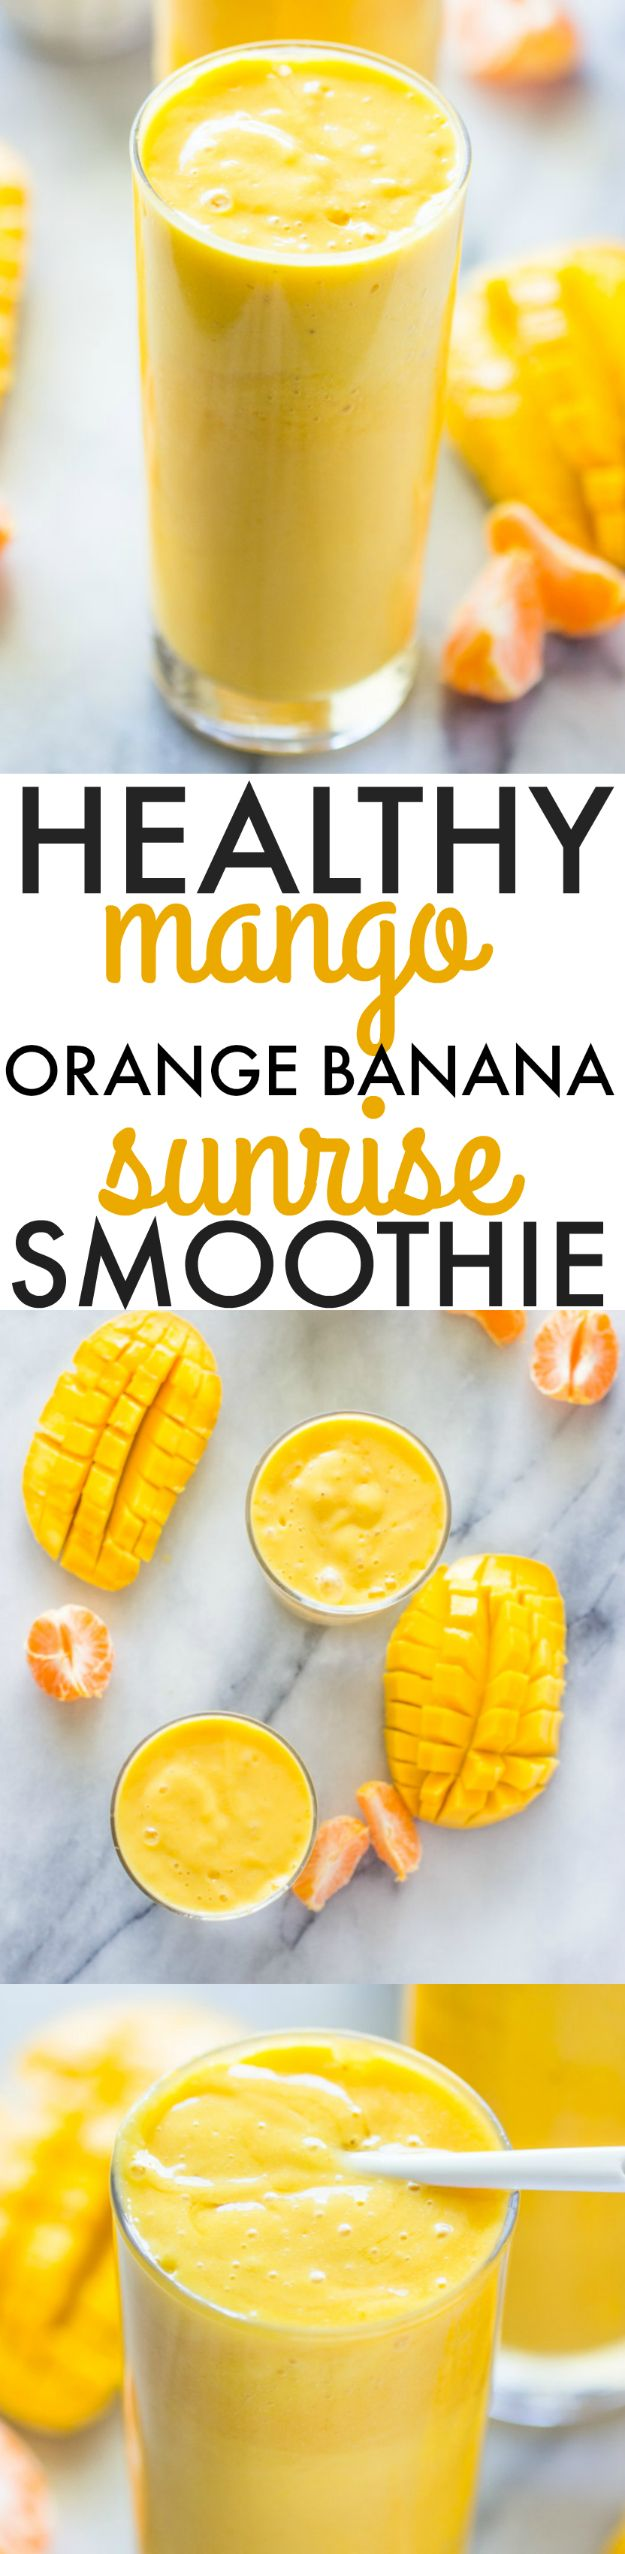 Healthy Smoothie Recipes - Healthy Mango Orange Banana Sunrise Smoothie - Easy ideas perfect for breakfast, energy. Low calorie and high protein recipes for weightloss and to lose weight. Simple homemade recipe ideas that kids love. Quick EASY morning recipes before work and school, after workout http://diyjoy.com/healthy-smoothie-recipes